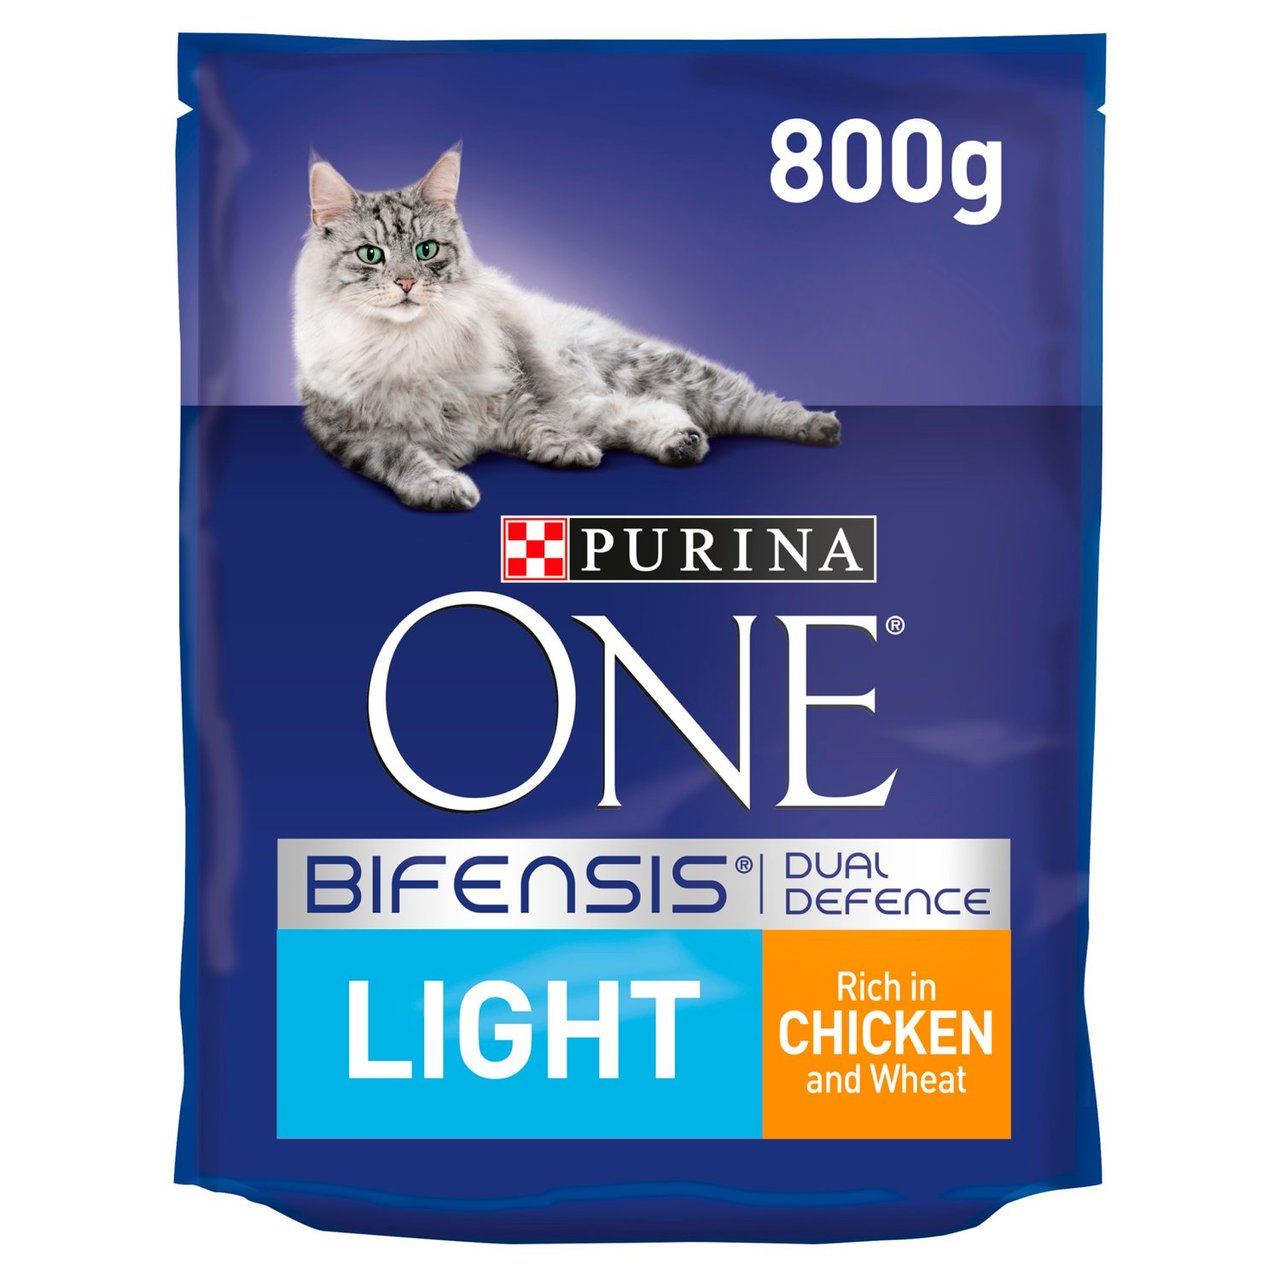 Purina One Weight Loss Dog Food